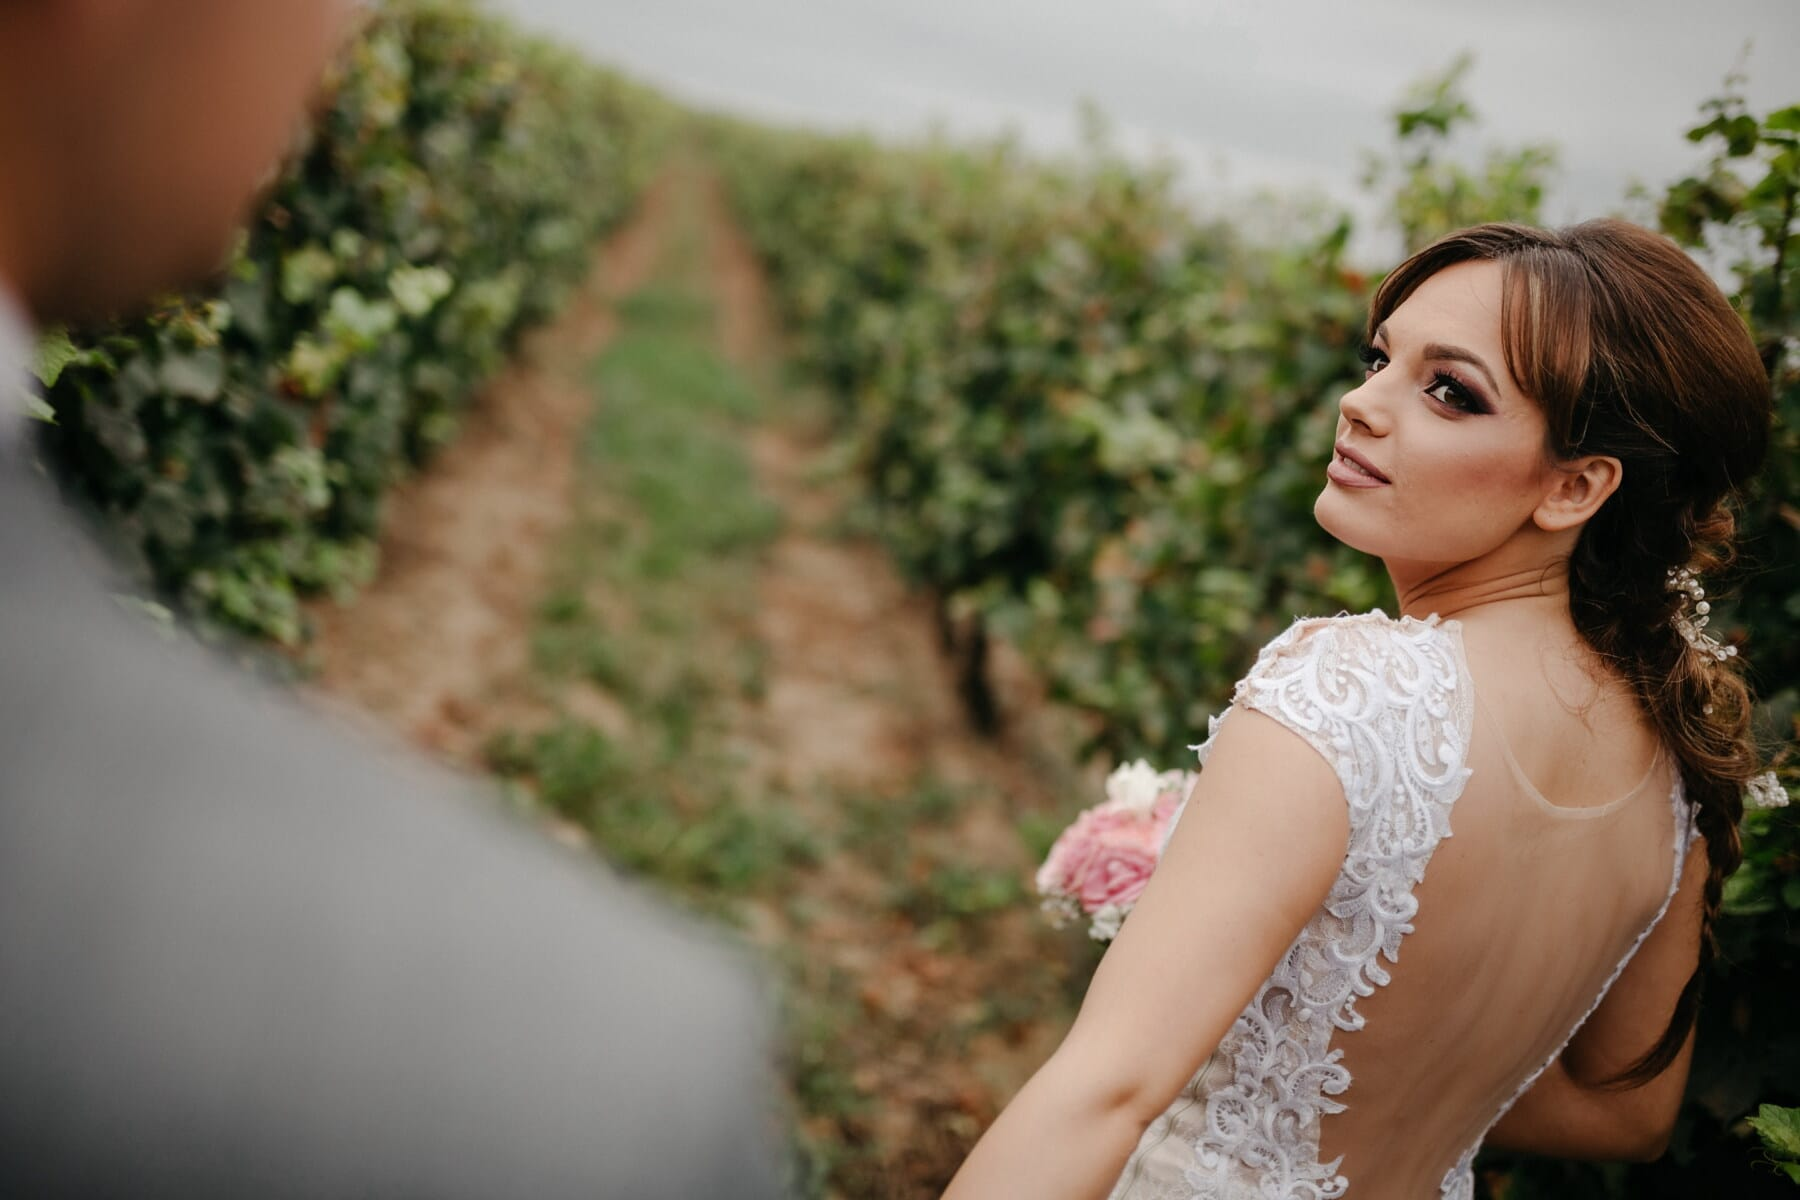 young woman, orchard, vineyard, bride, attractive, woman, wedding, nature, pretty, portrait